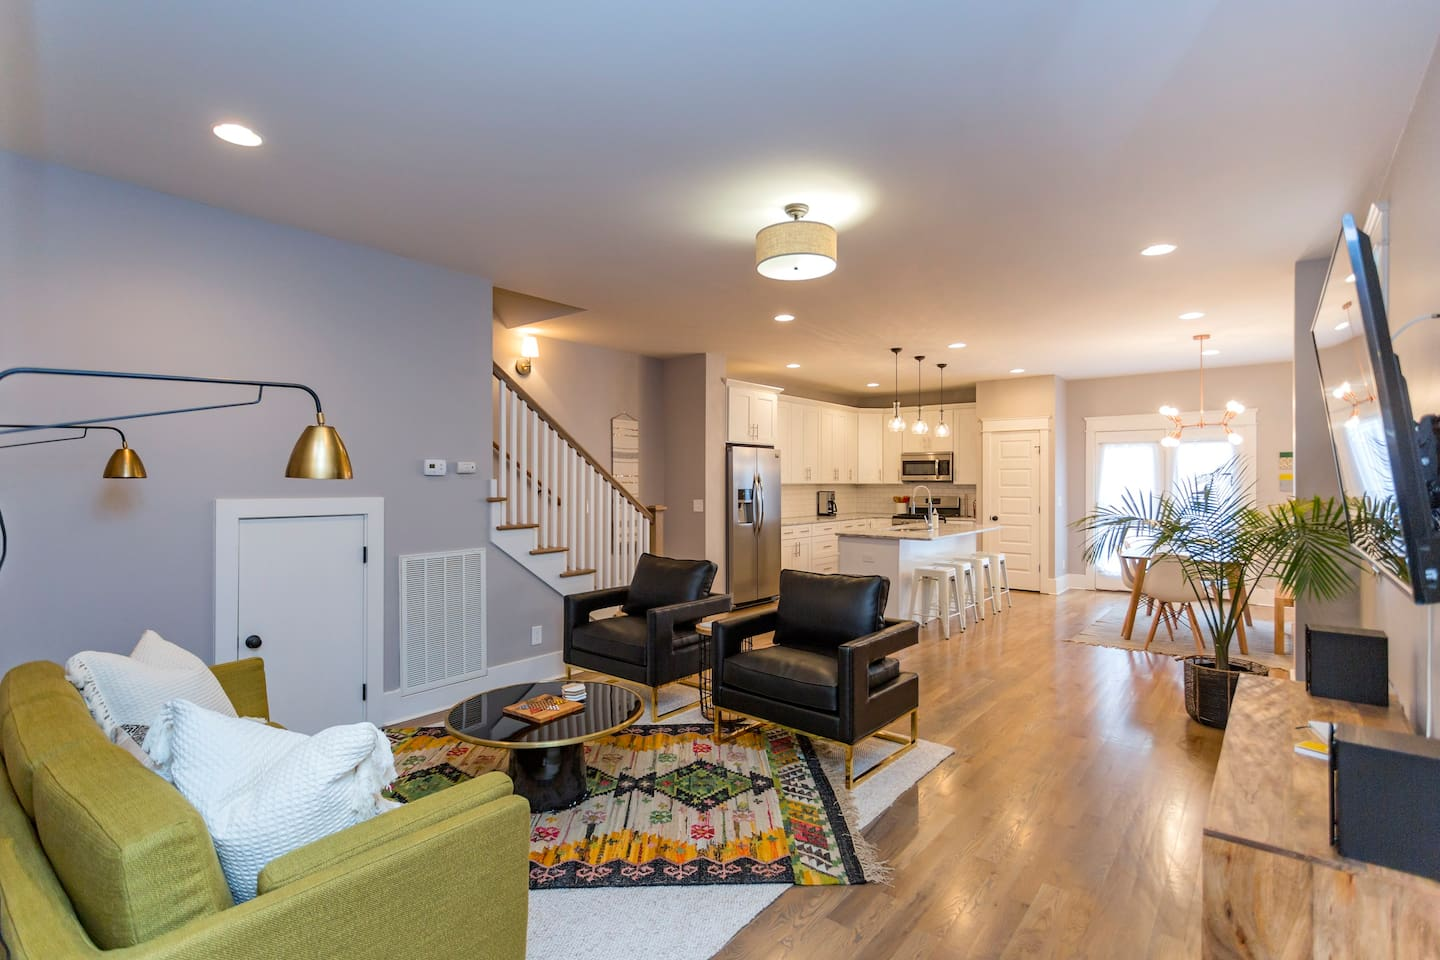 Downstairs layout with 4K full cable smart TV, living room, open kitchen and dining room!